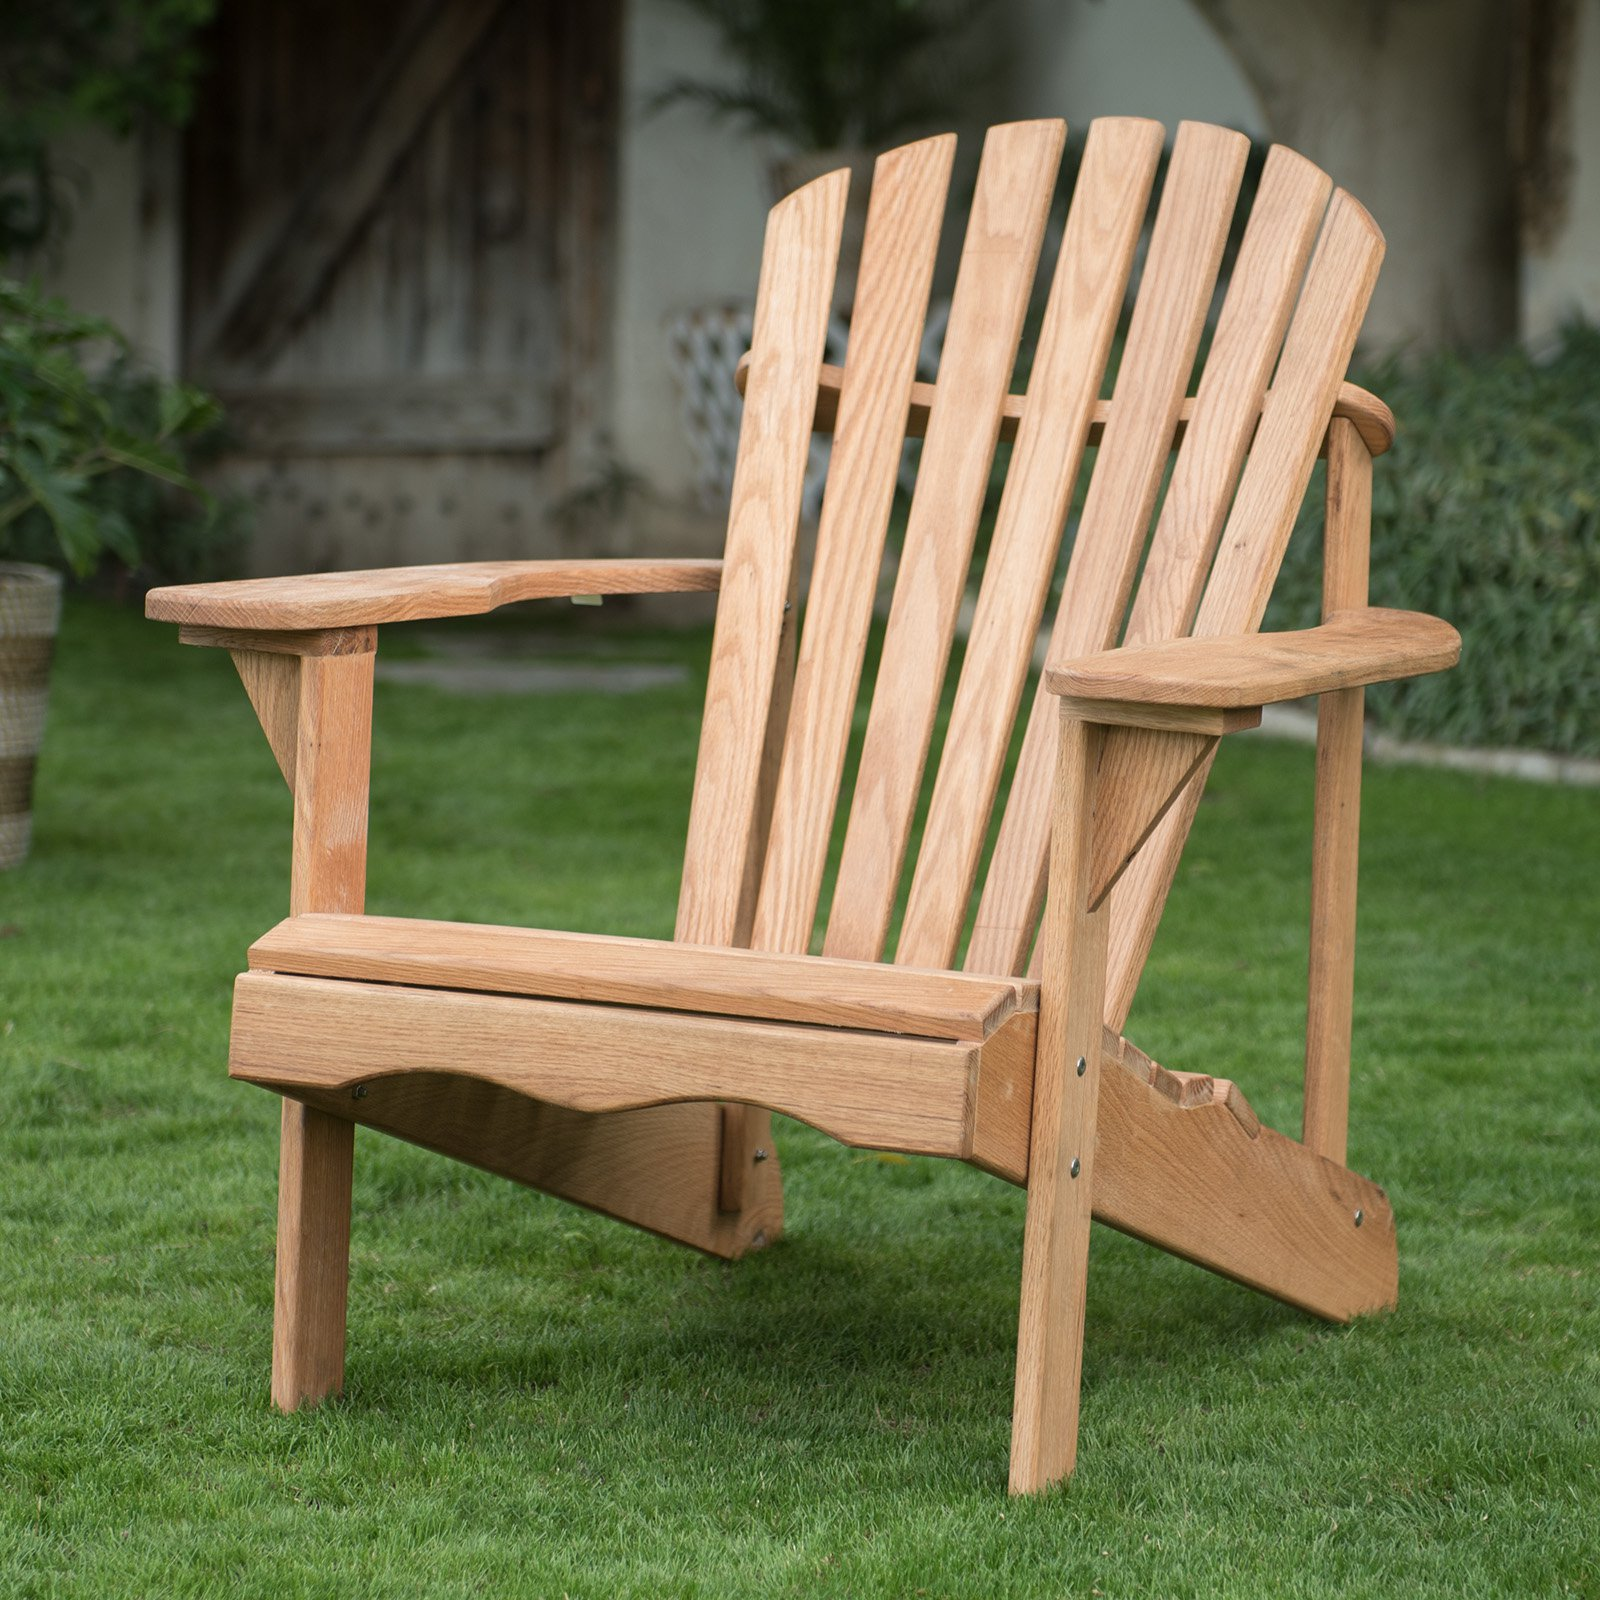 Belham Living Hampton Oak Wood Deluxe Adirondack Chair